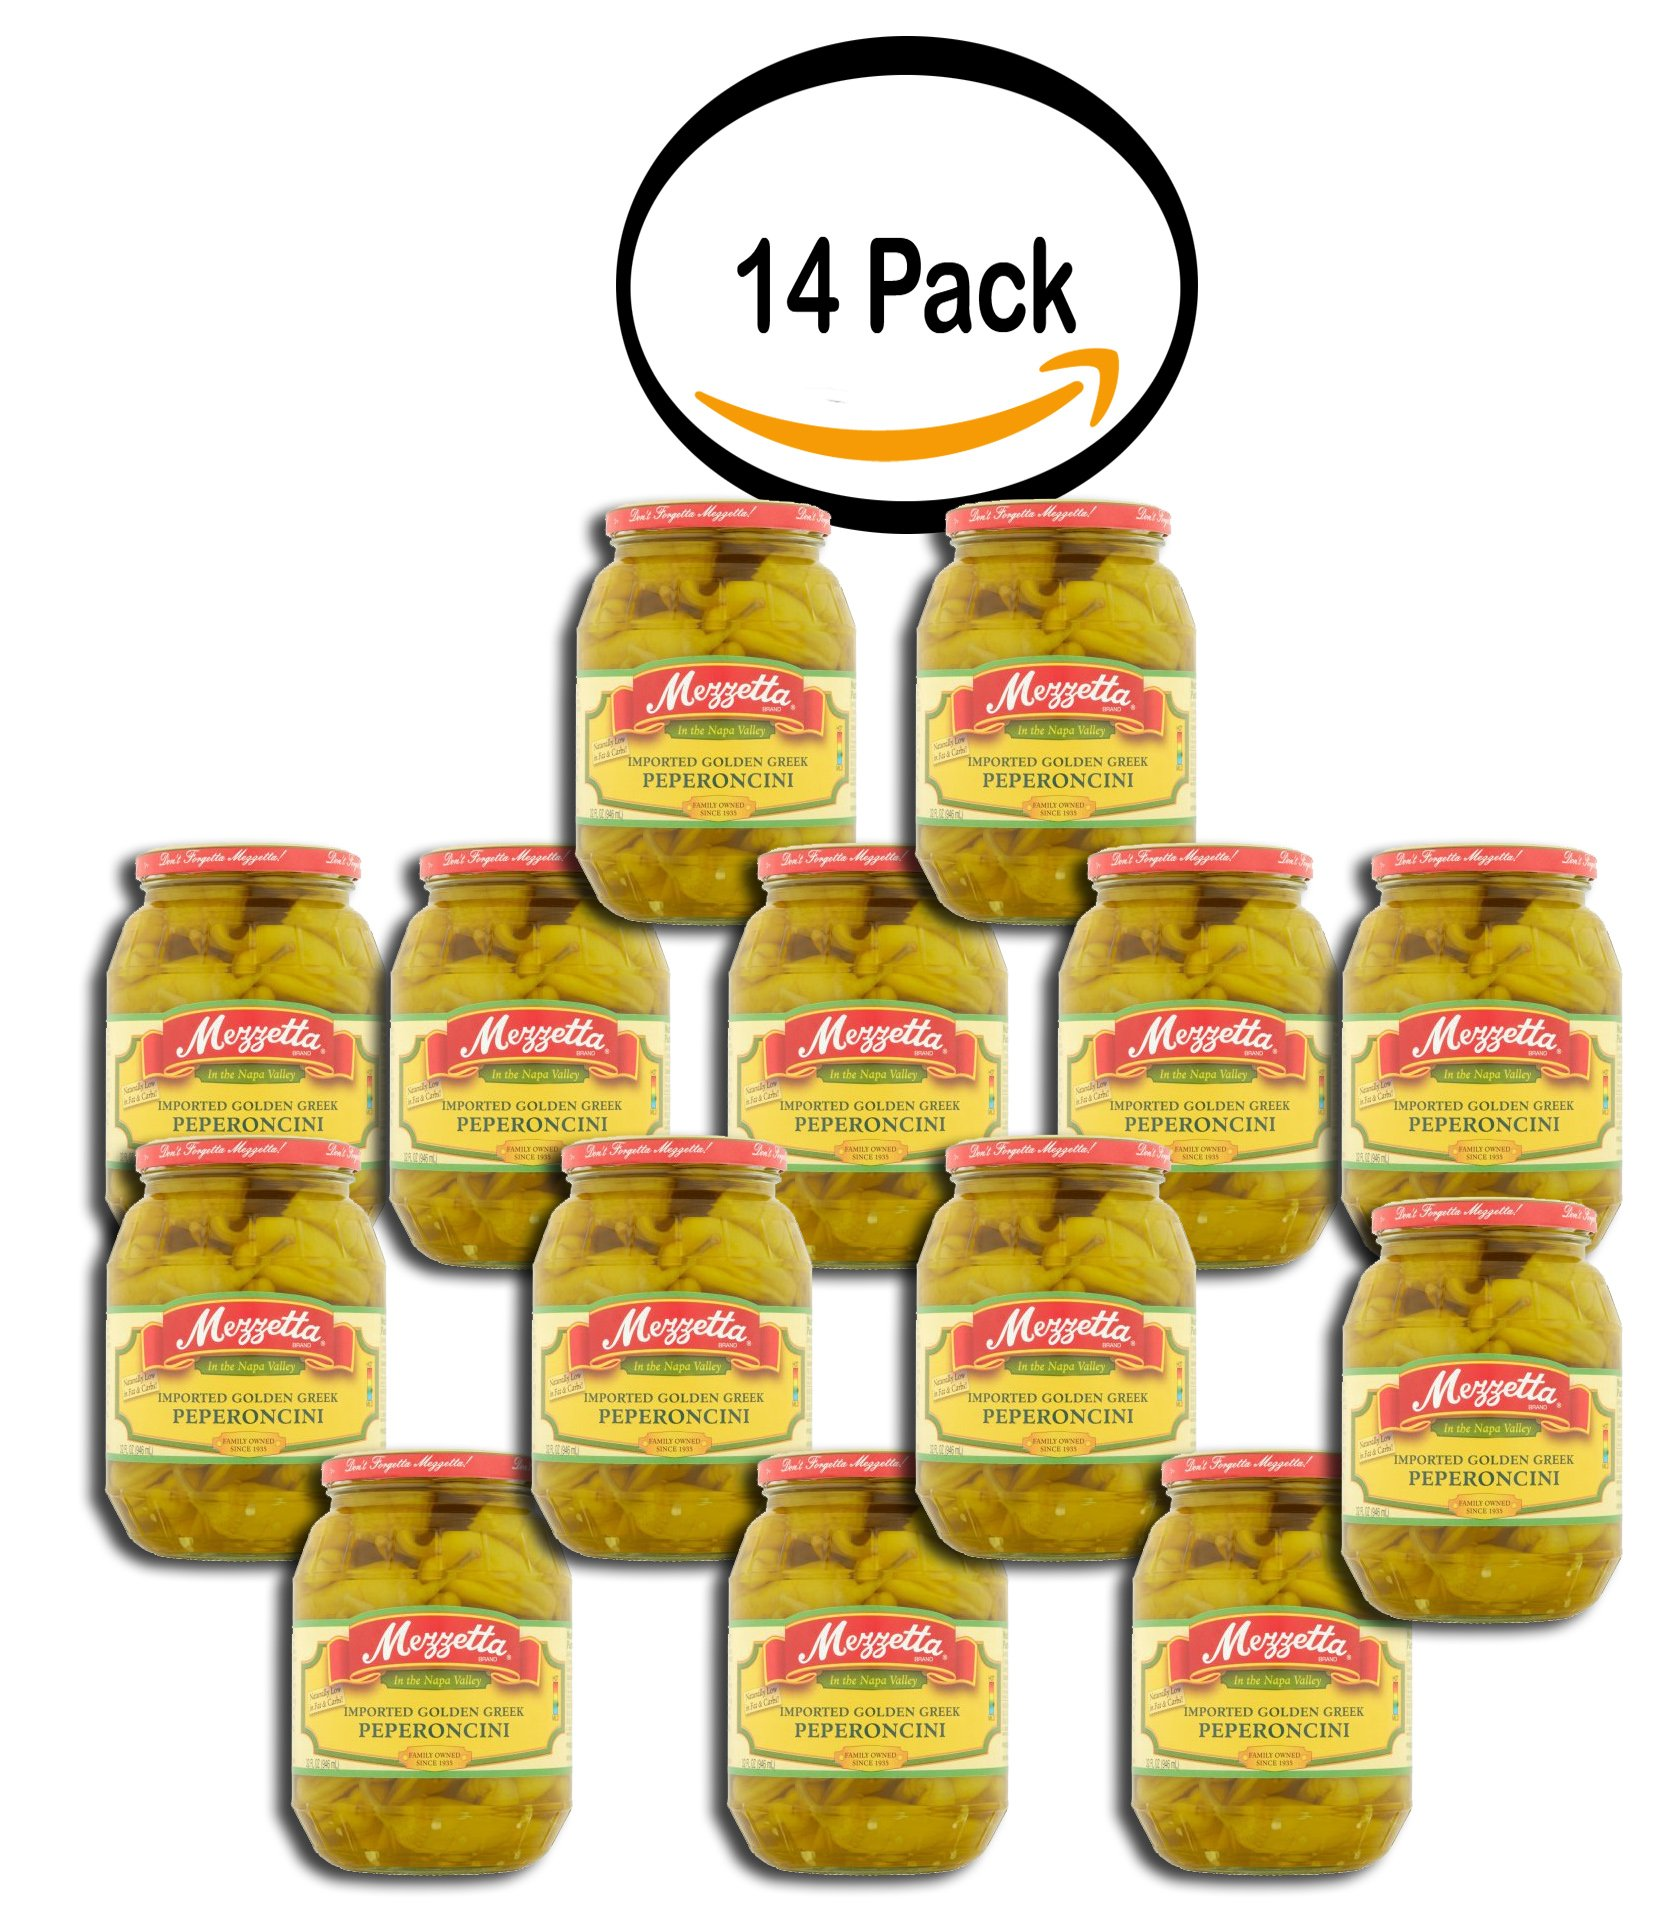 PACK OF 14 - Mezzetta Imported Golden Greek Peperoncini, 32.0 FL OZ by Mezzetta